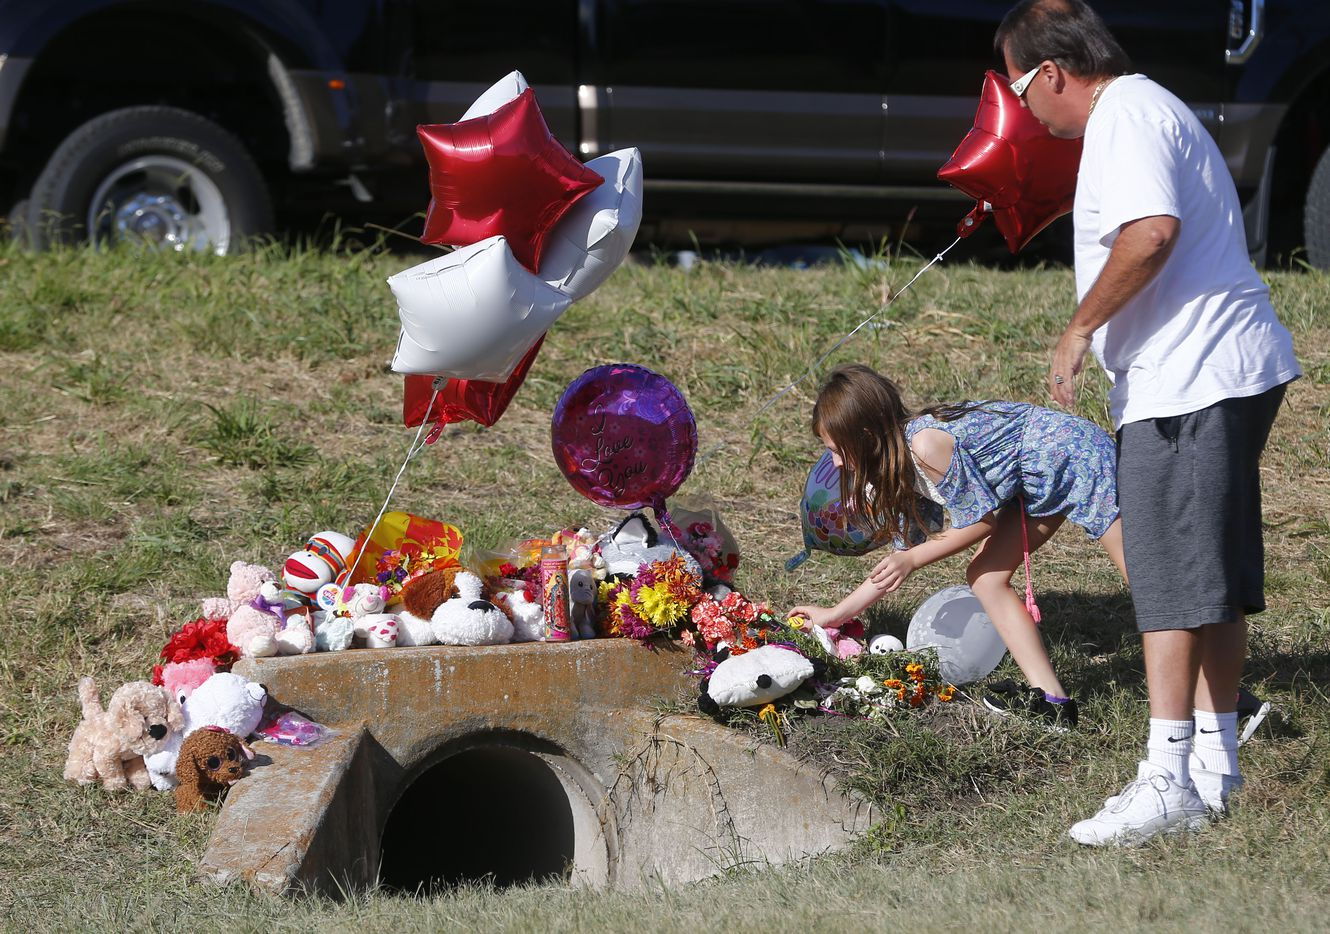 Miley Grahmann, 8, leaves a bear with a jar of Carmex (in case her lips get chapped in Heaven) with her father Patrick Grahmnann in the area where the body of a small child was found Sunday morning during the search for a missing 3-year-old girl, Richardson police announced Sunday. Police have not yet confirmed that the body is that of Sherin Mathews, who has been missing since Oct. 7. Photo taken on Oct. 23, 2017 in Richardson, Texas. Miley had seen Sherin Mathews when riding around with her father. (Nathan Hunsinger/The Dallas Morning News)